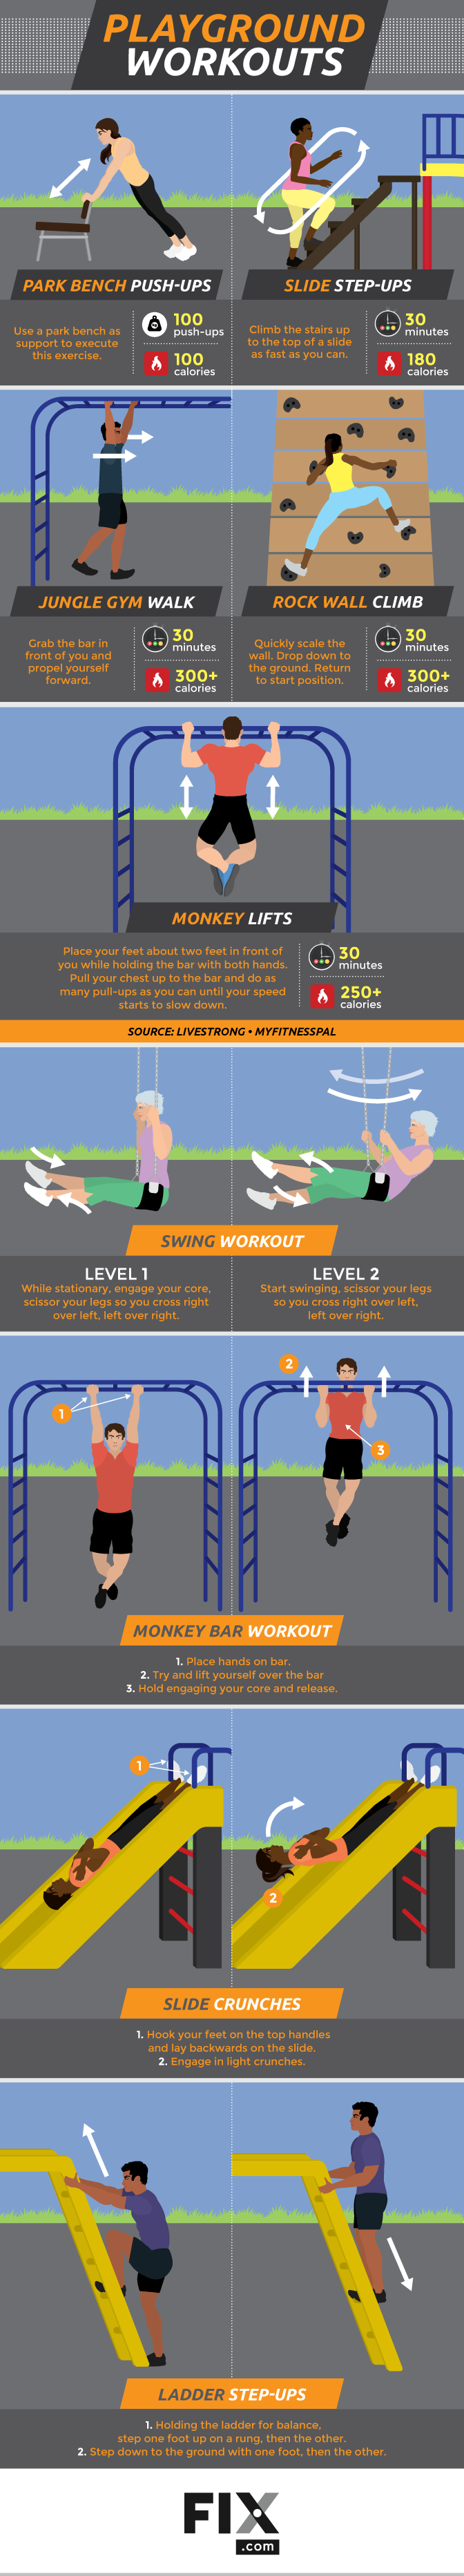 Playground Workouts